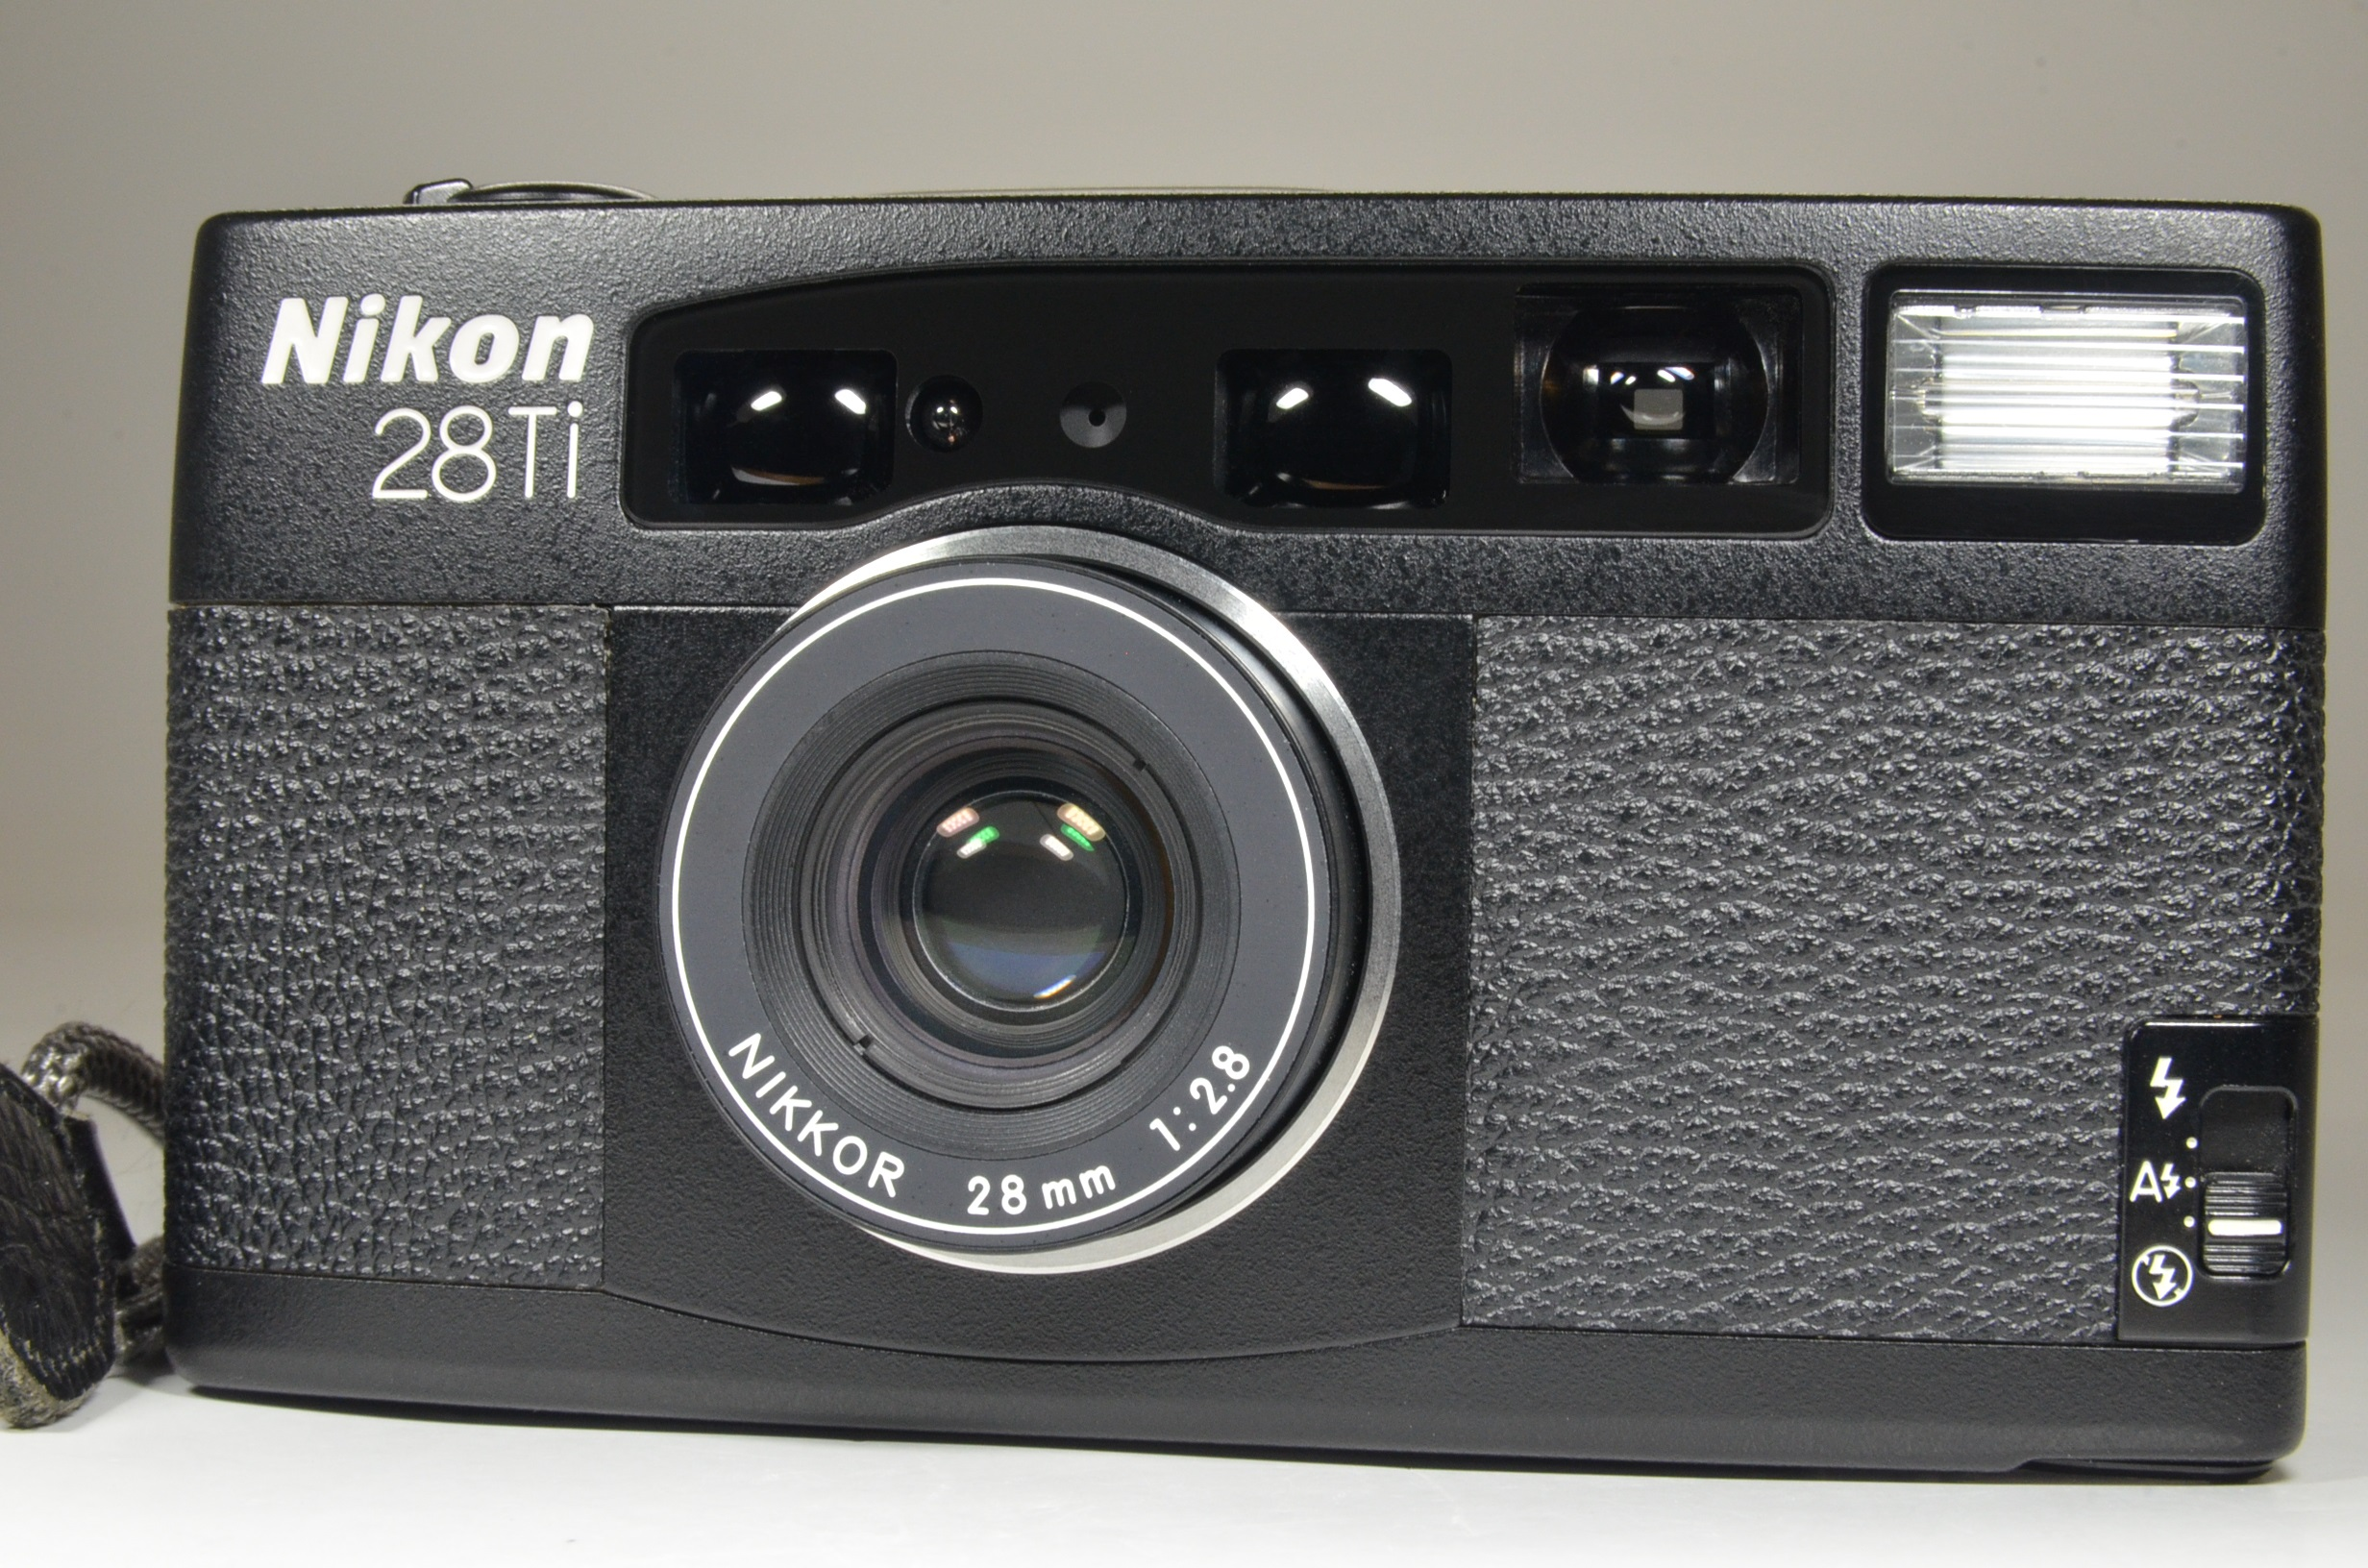 nikon 28ti point & shoot 35mm film camera lens 28mm f2.8